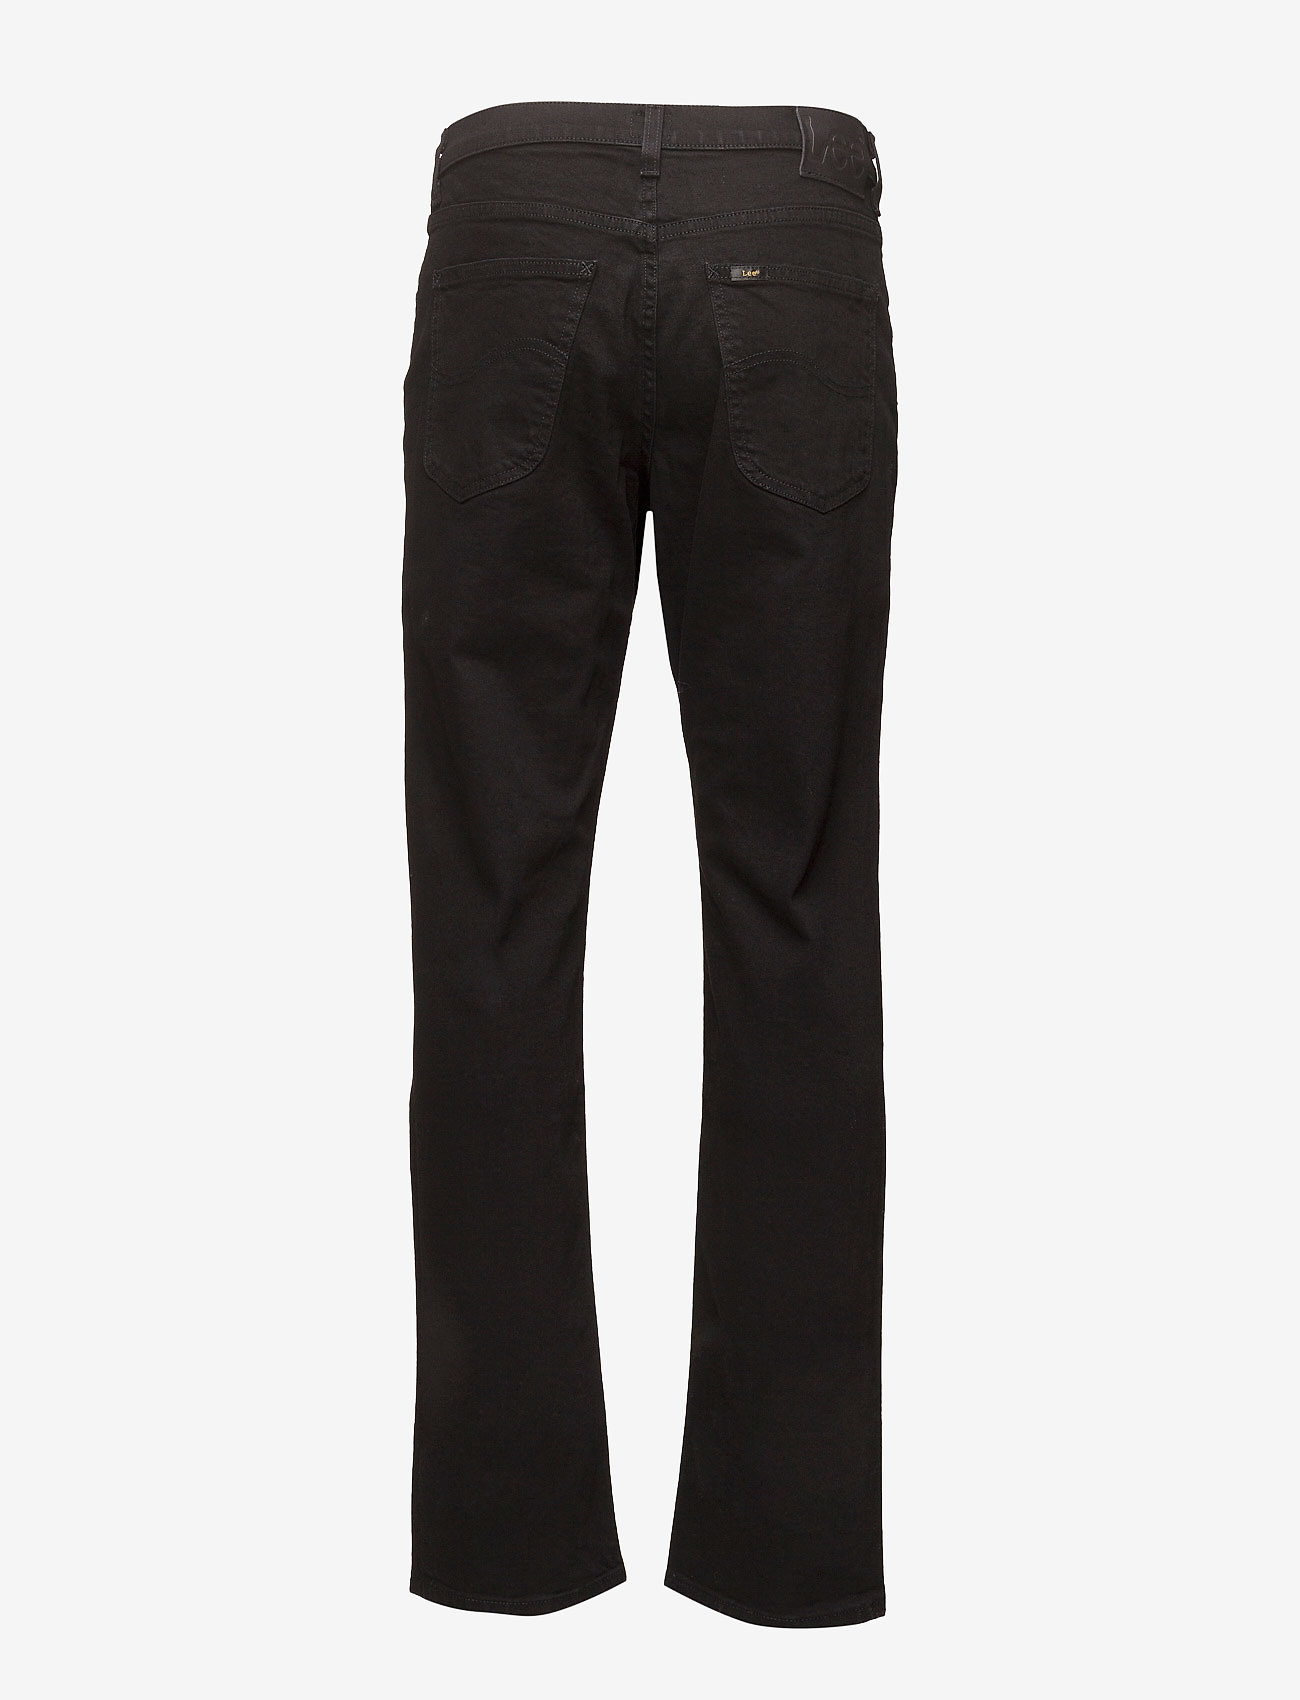 Lee Jeans - BROOKLYN STRAIGHT - relaxed jeans - clean black - 1